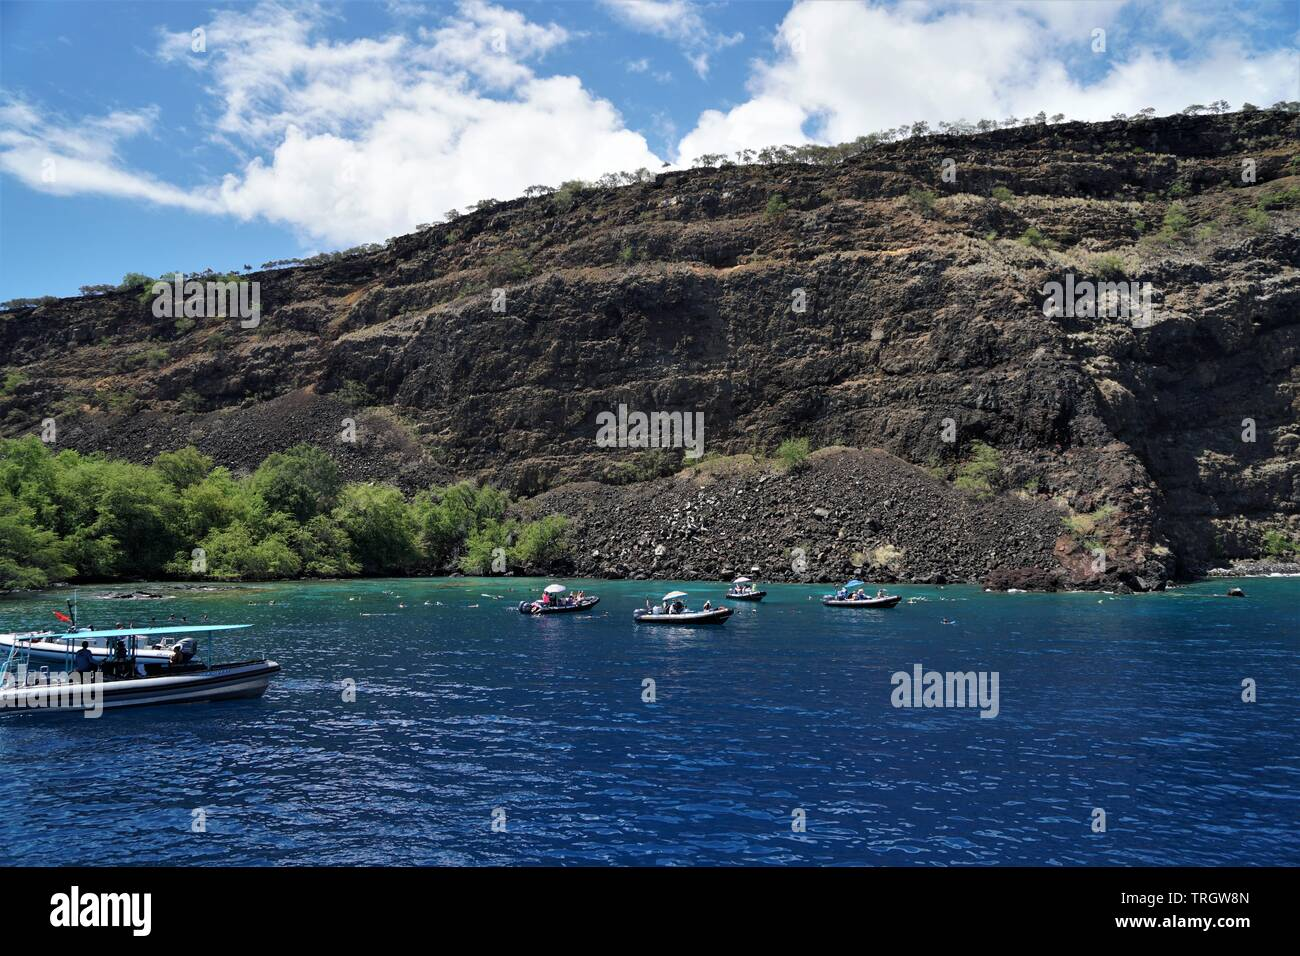 Sport diving and sport fishing are staples of Hawaiian culture and favorites among tourists - Stock Image